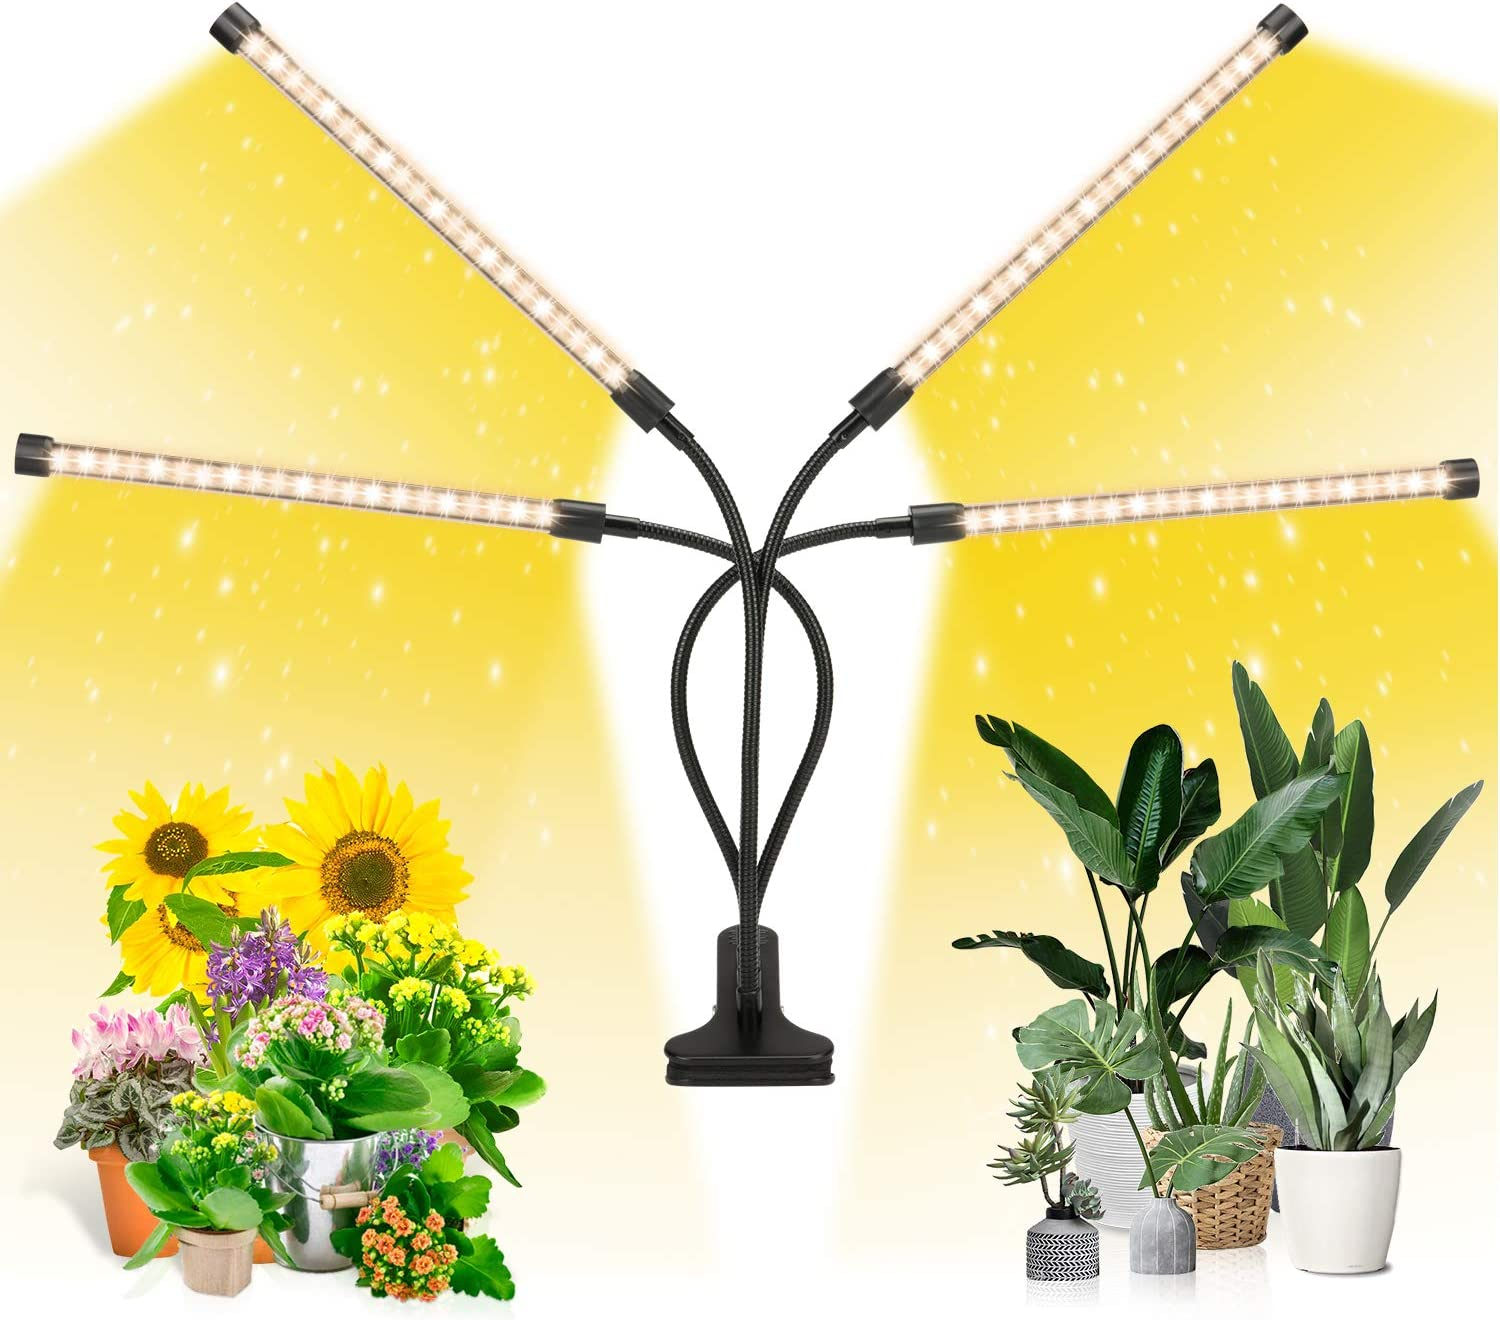 EZORKAS LED Growth Light,80W Four Head Timing,5 Dimmable Levels, Plant Grow Light for Indoor Plant with Full Spectrum,Adjustable Goosencck, 3、6/12H Timer, 3 Switch Modes: Home Improvement